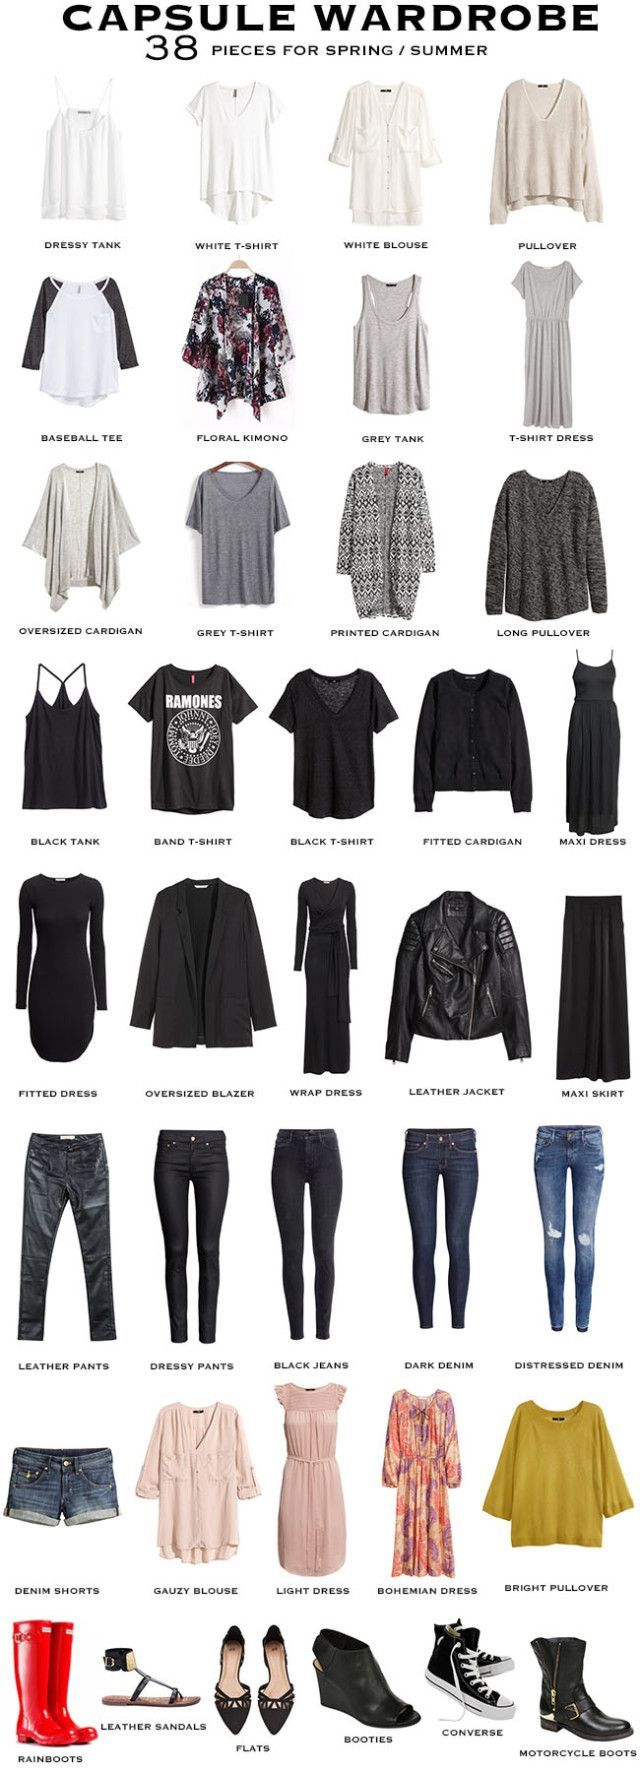 A 38 piece Capsule Wardrobe for Spring / Summer. #capsulewardrobe #capsule